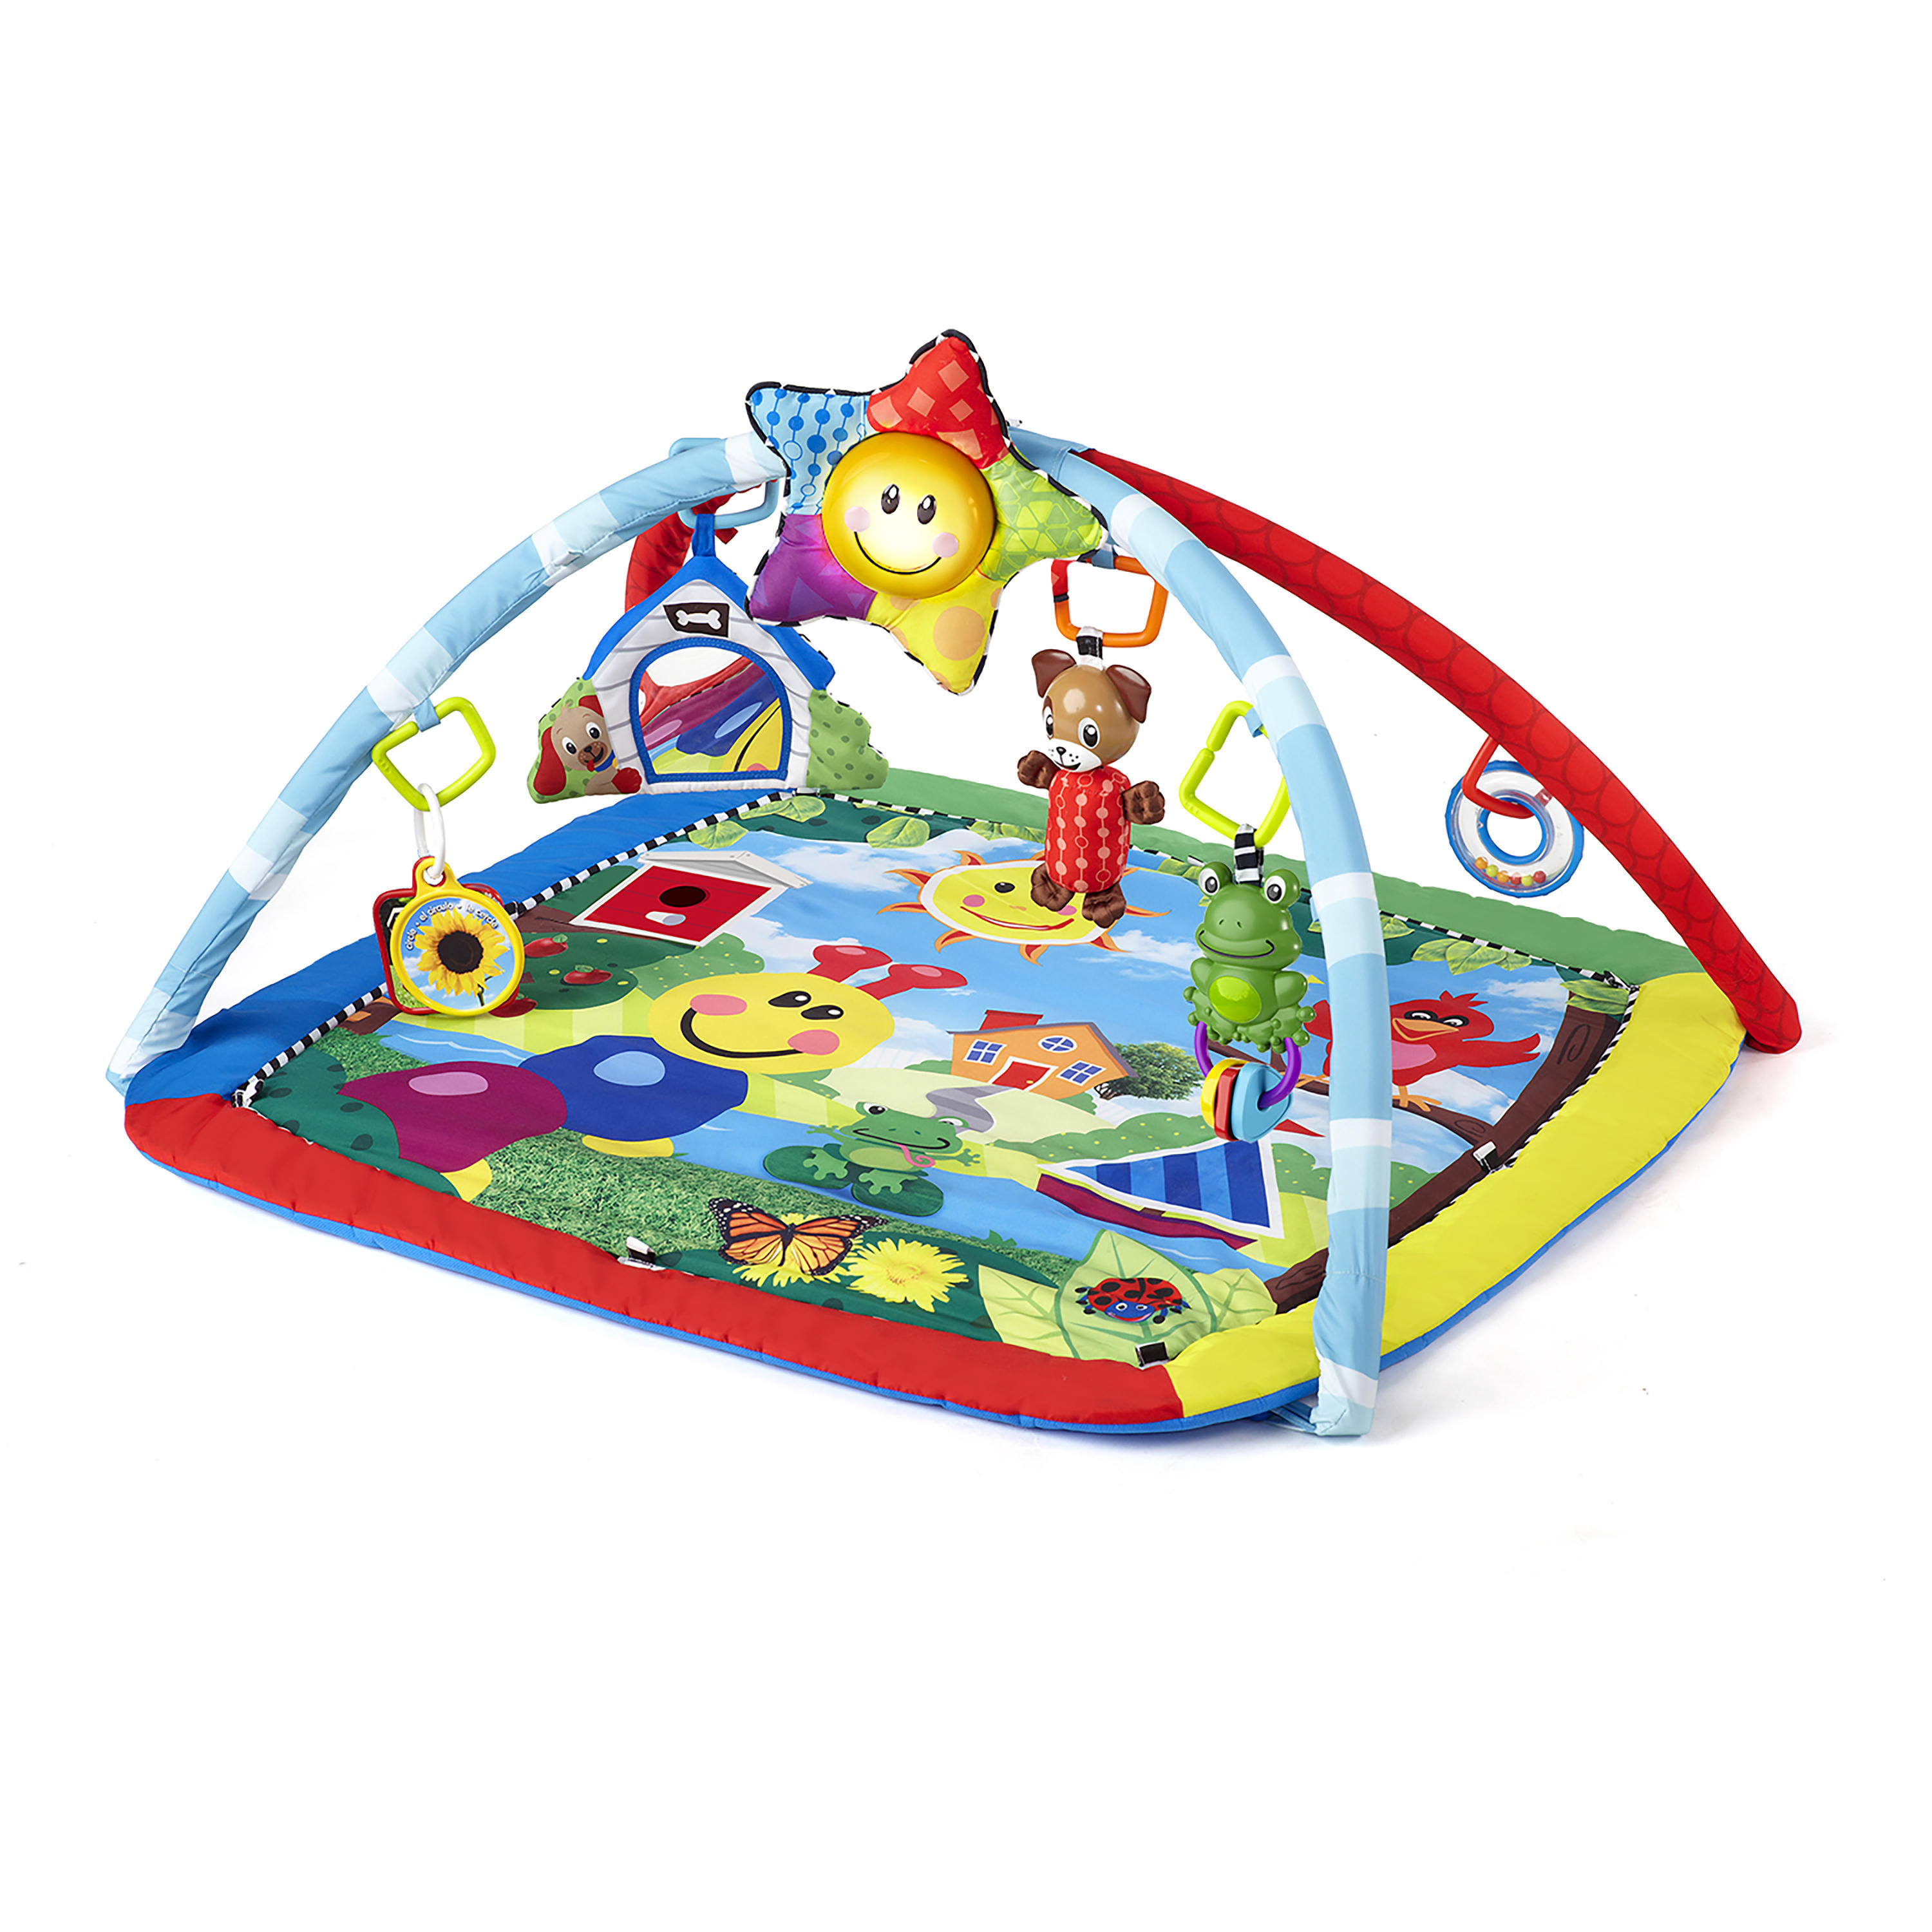 Baby Einstein Caterpillar & Friends Play Gym by Baby Einstein